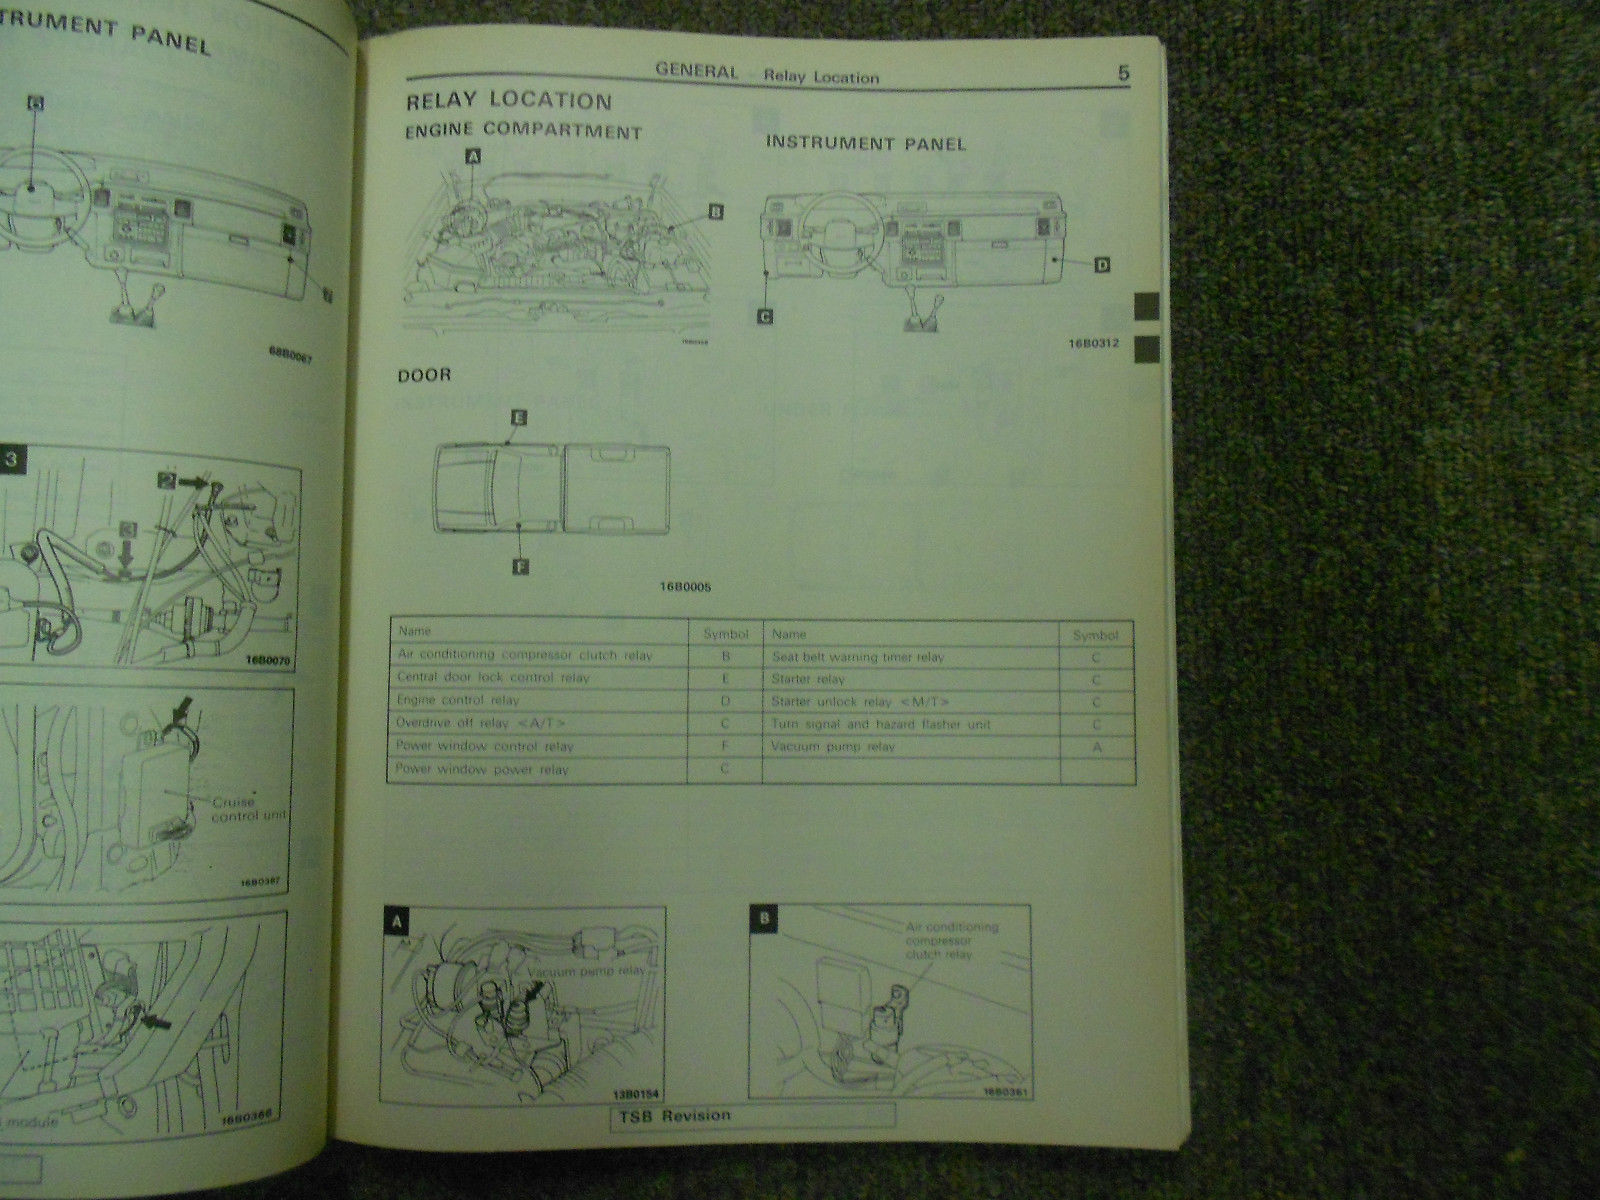 1992 1996 MITSUBISHI TRUCK Service Reoair Shop Manual VOLUME 2 FACTORY OEM 92 96 image 4